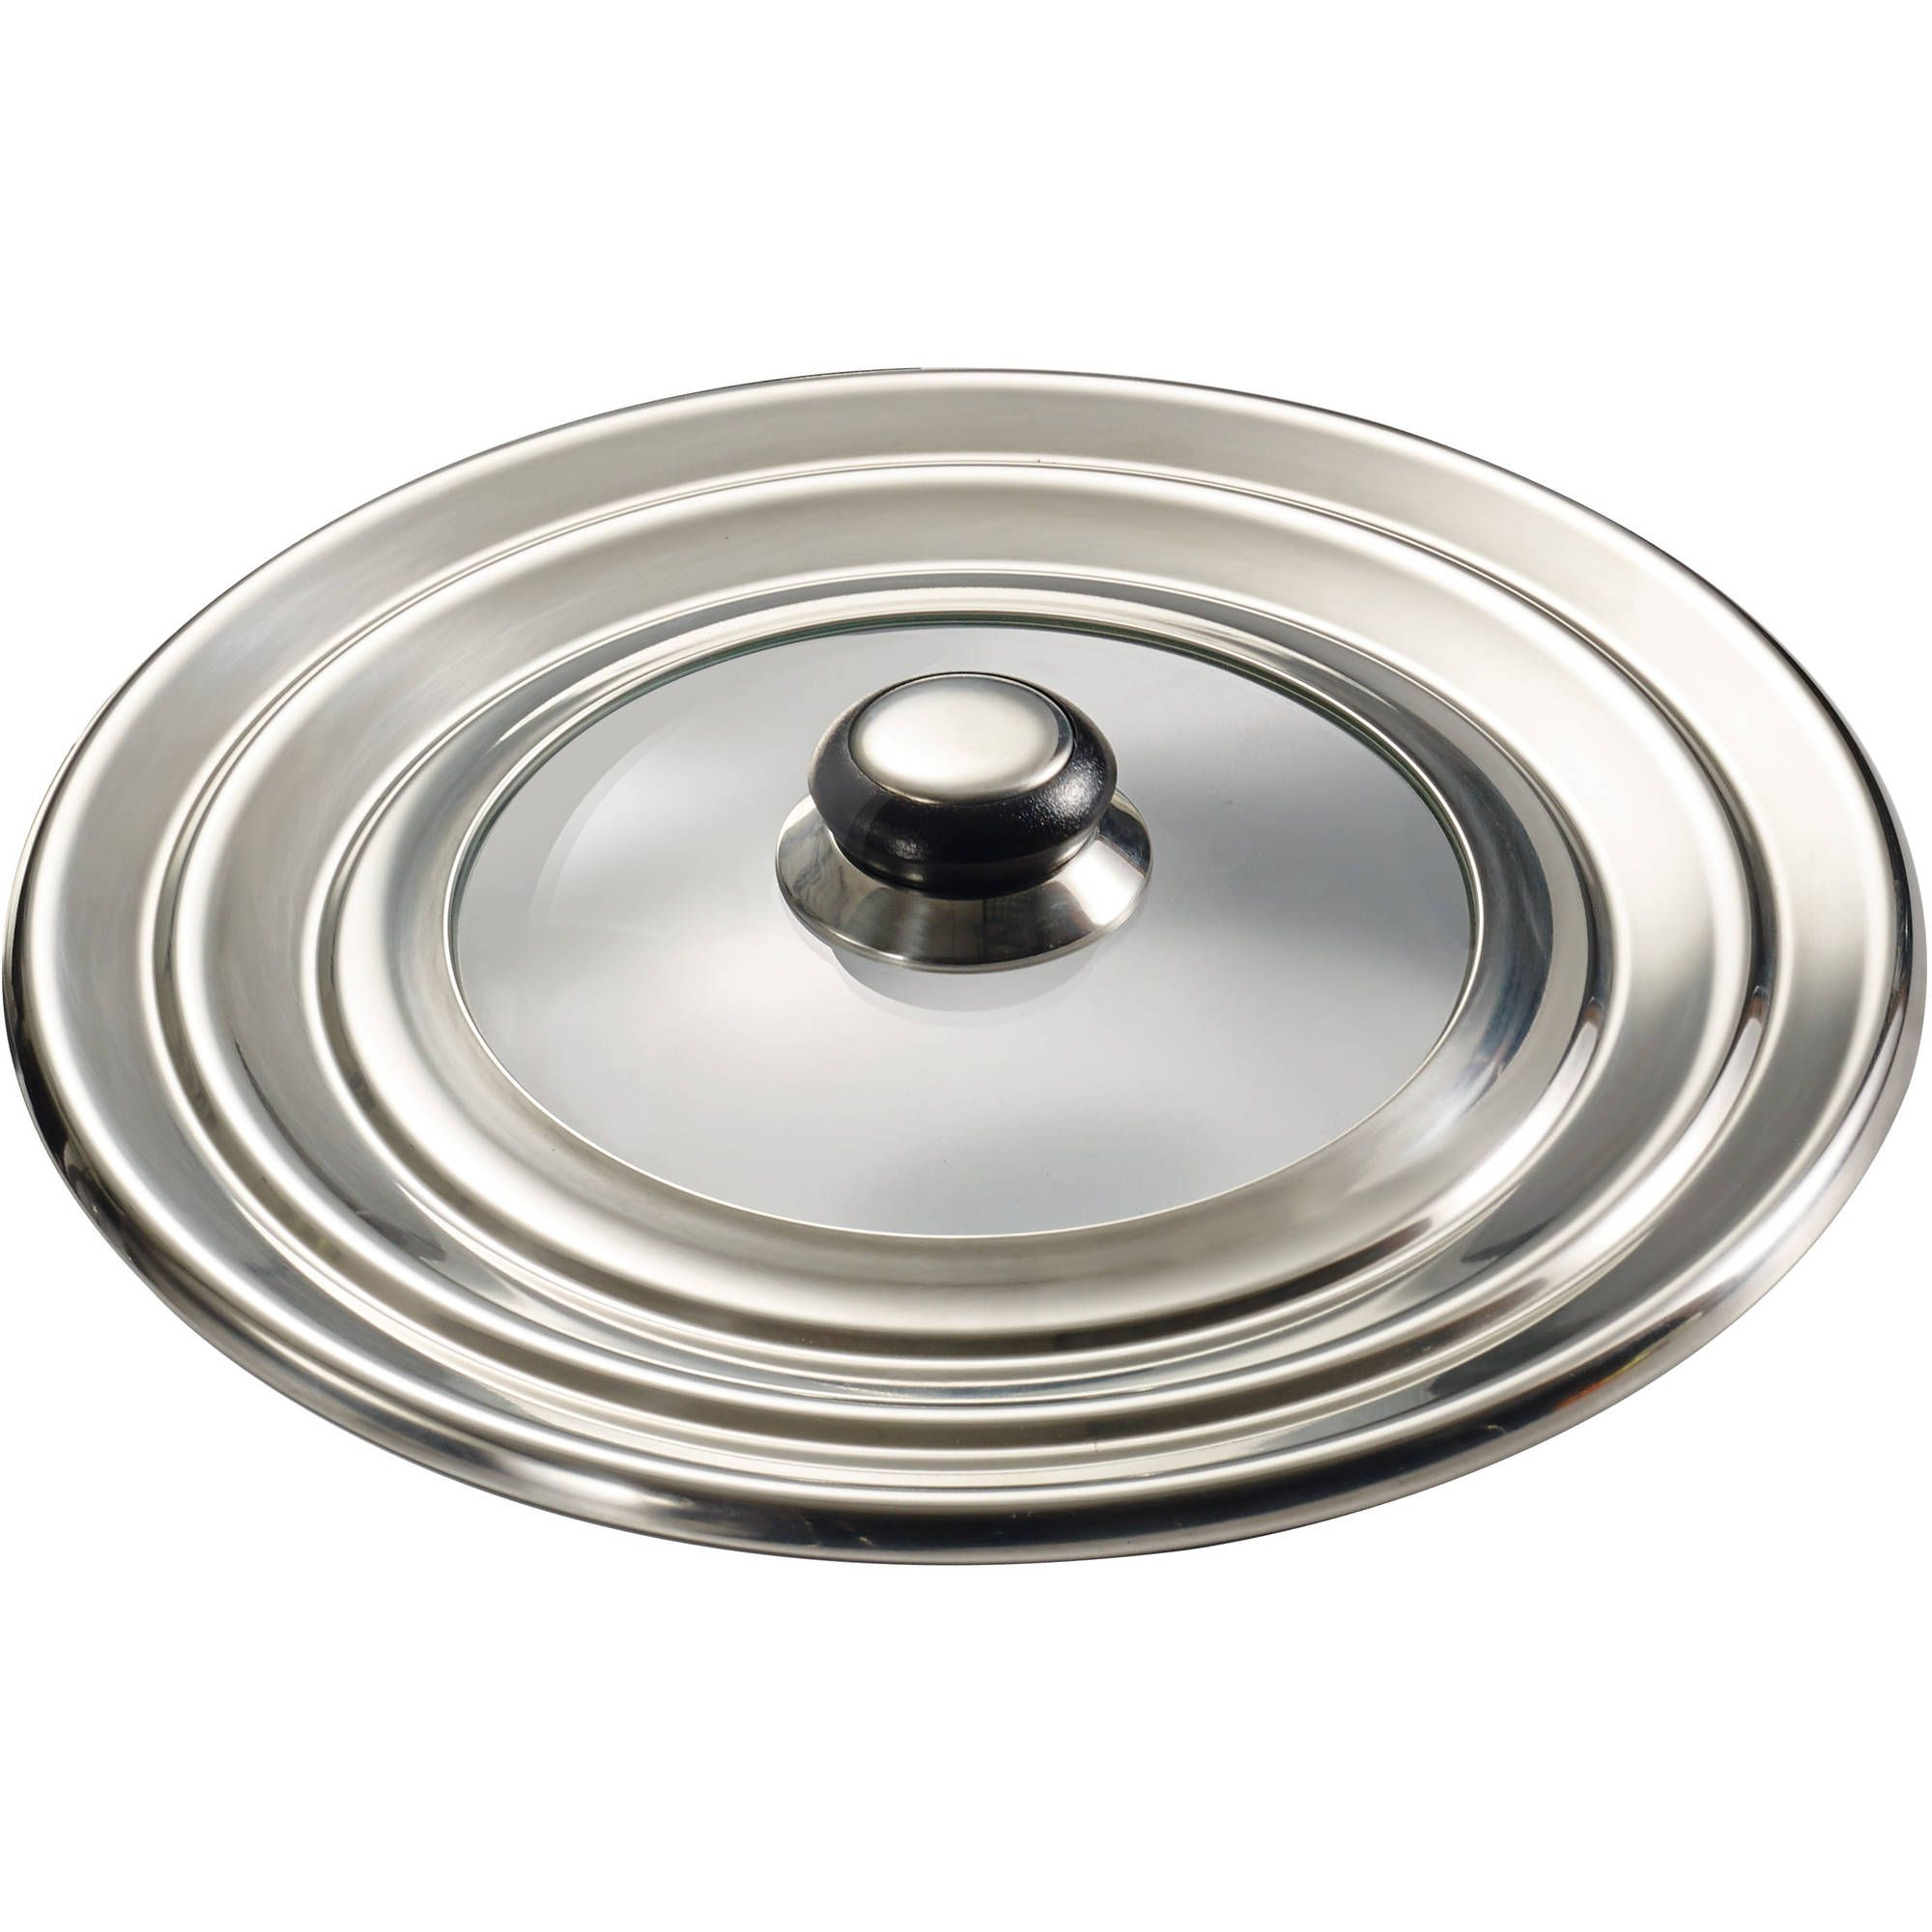 Universal Lid Glass/Stainless Steel Primaware